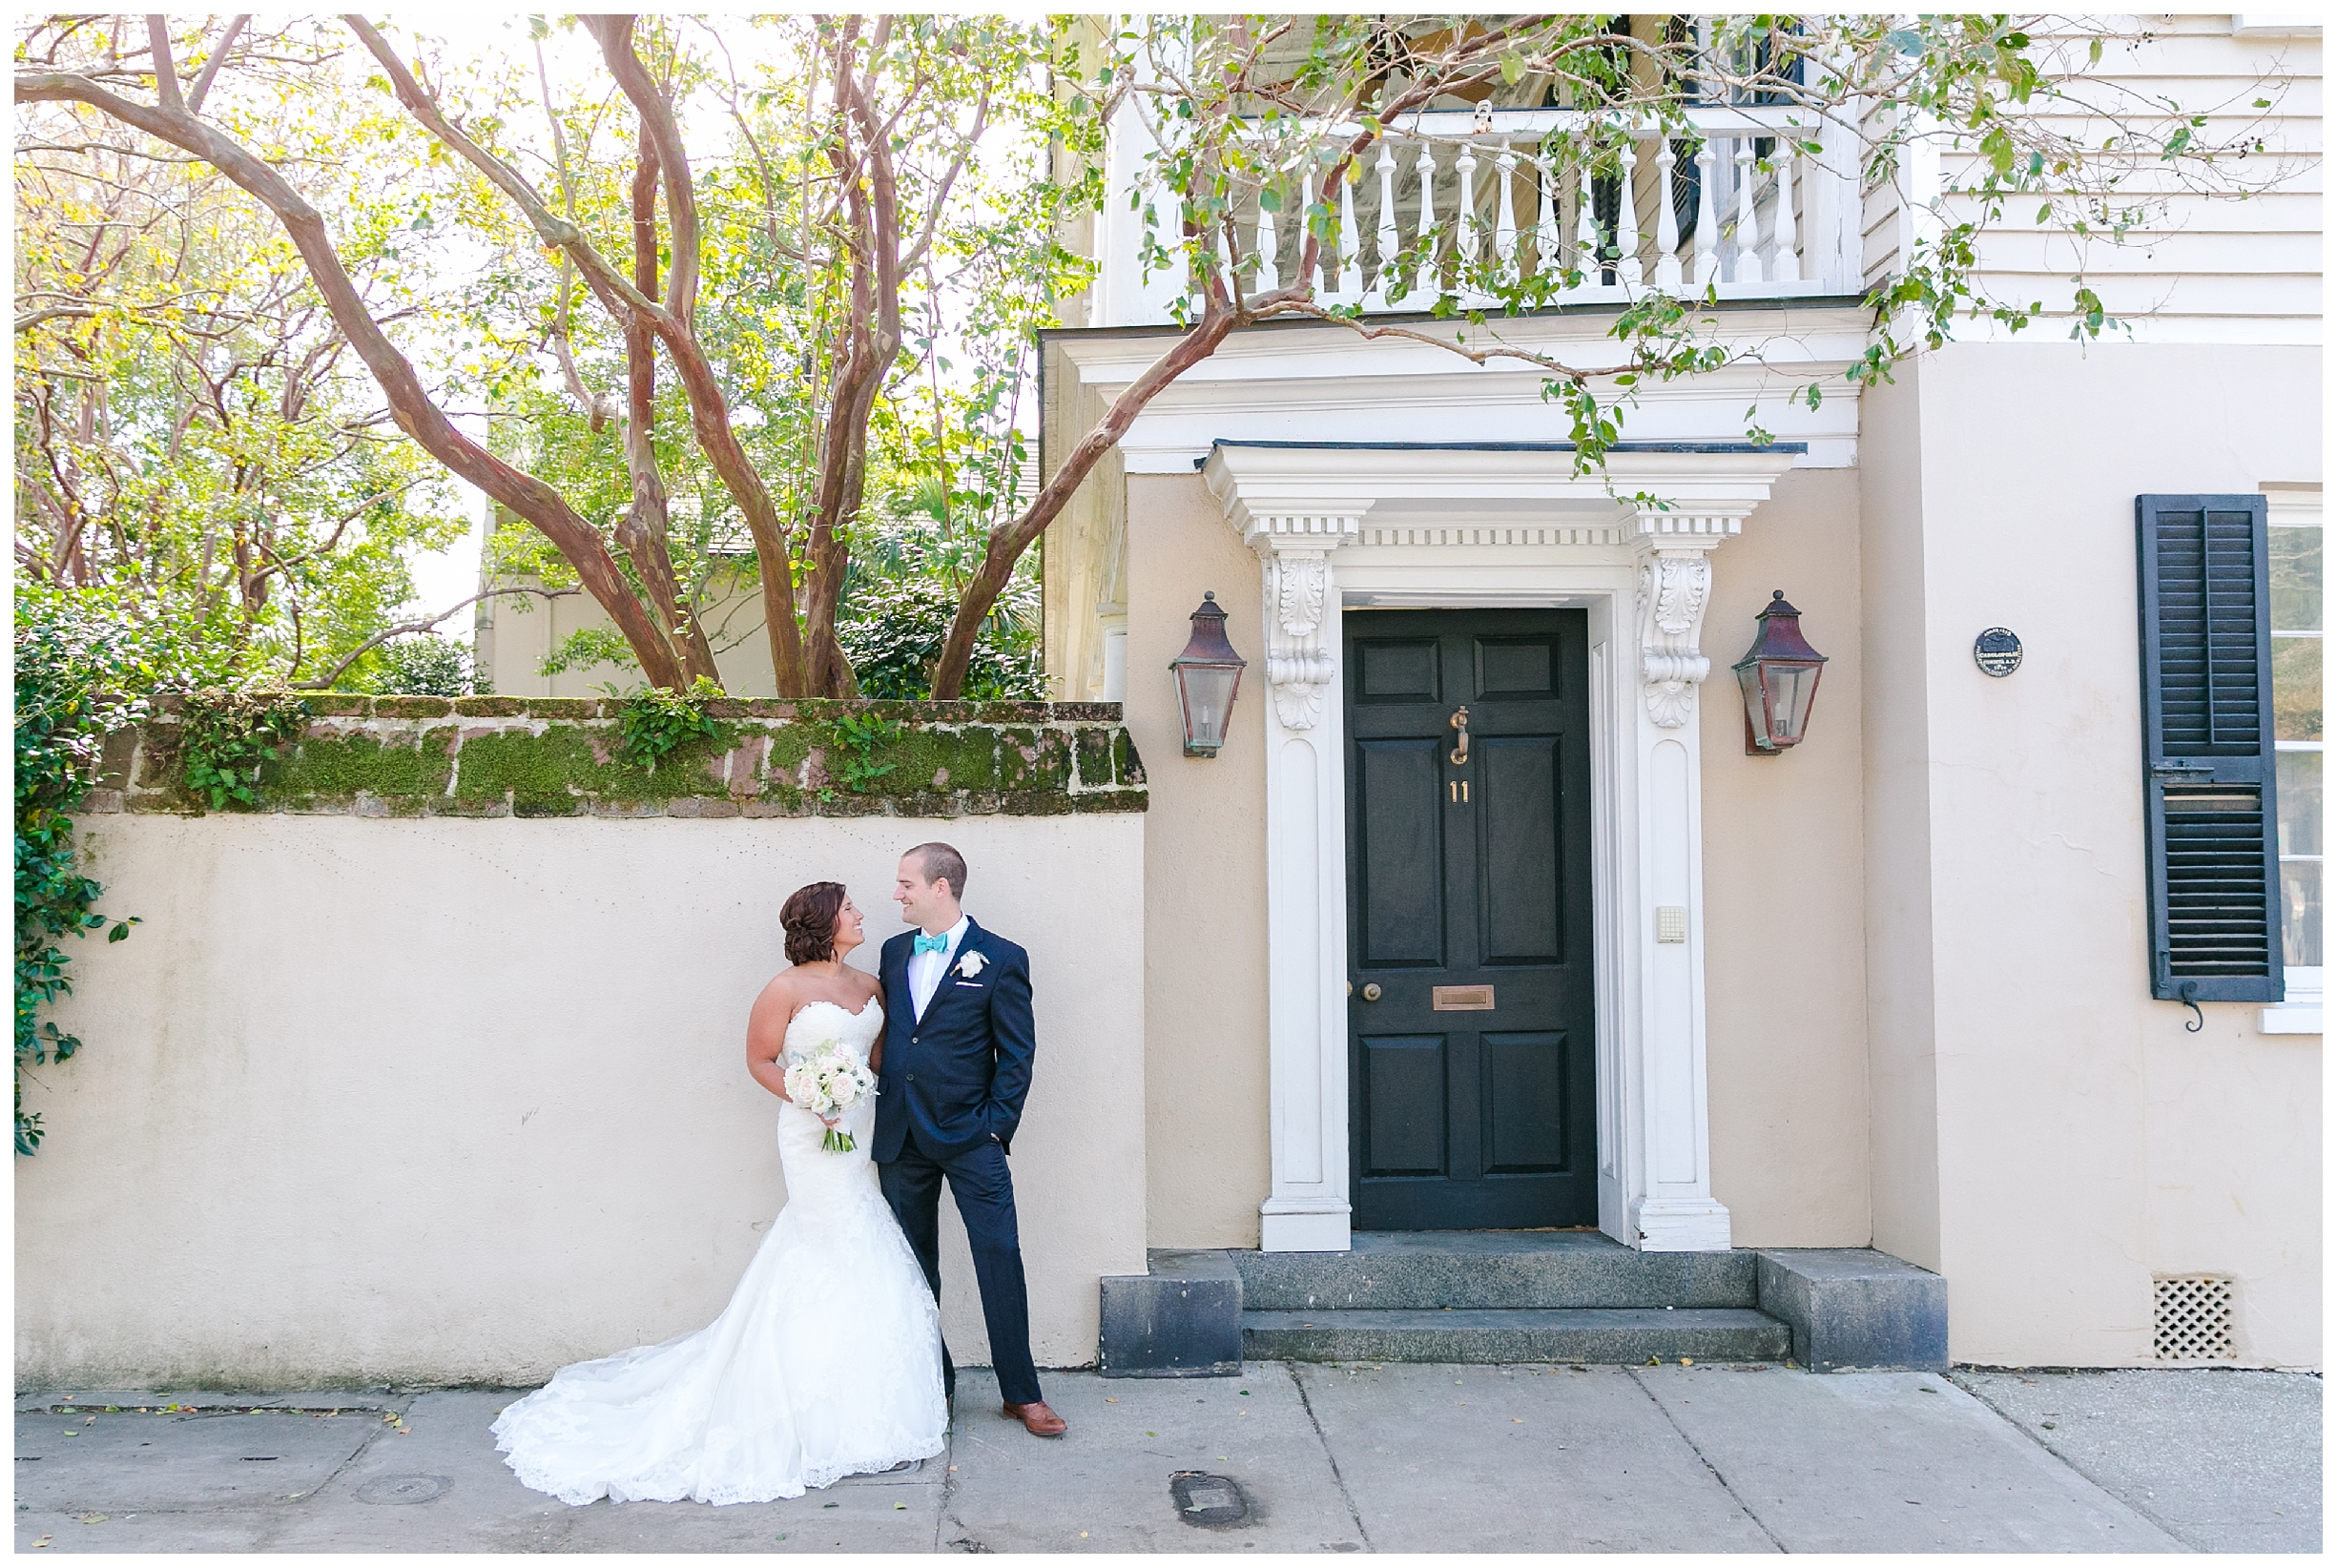 charleston-wedding-photographer-lauren-bill_0017.jpg